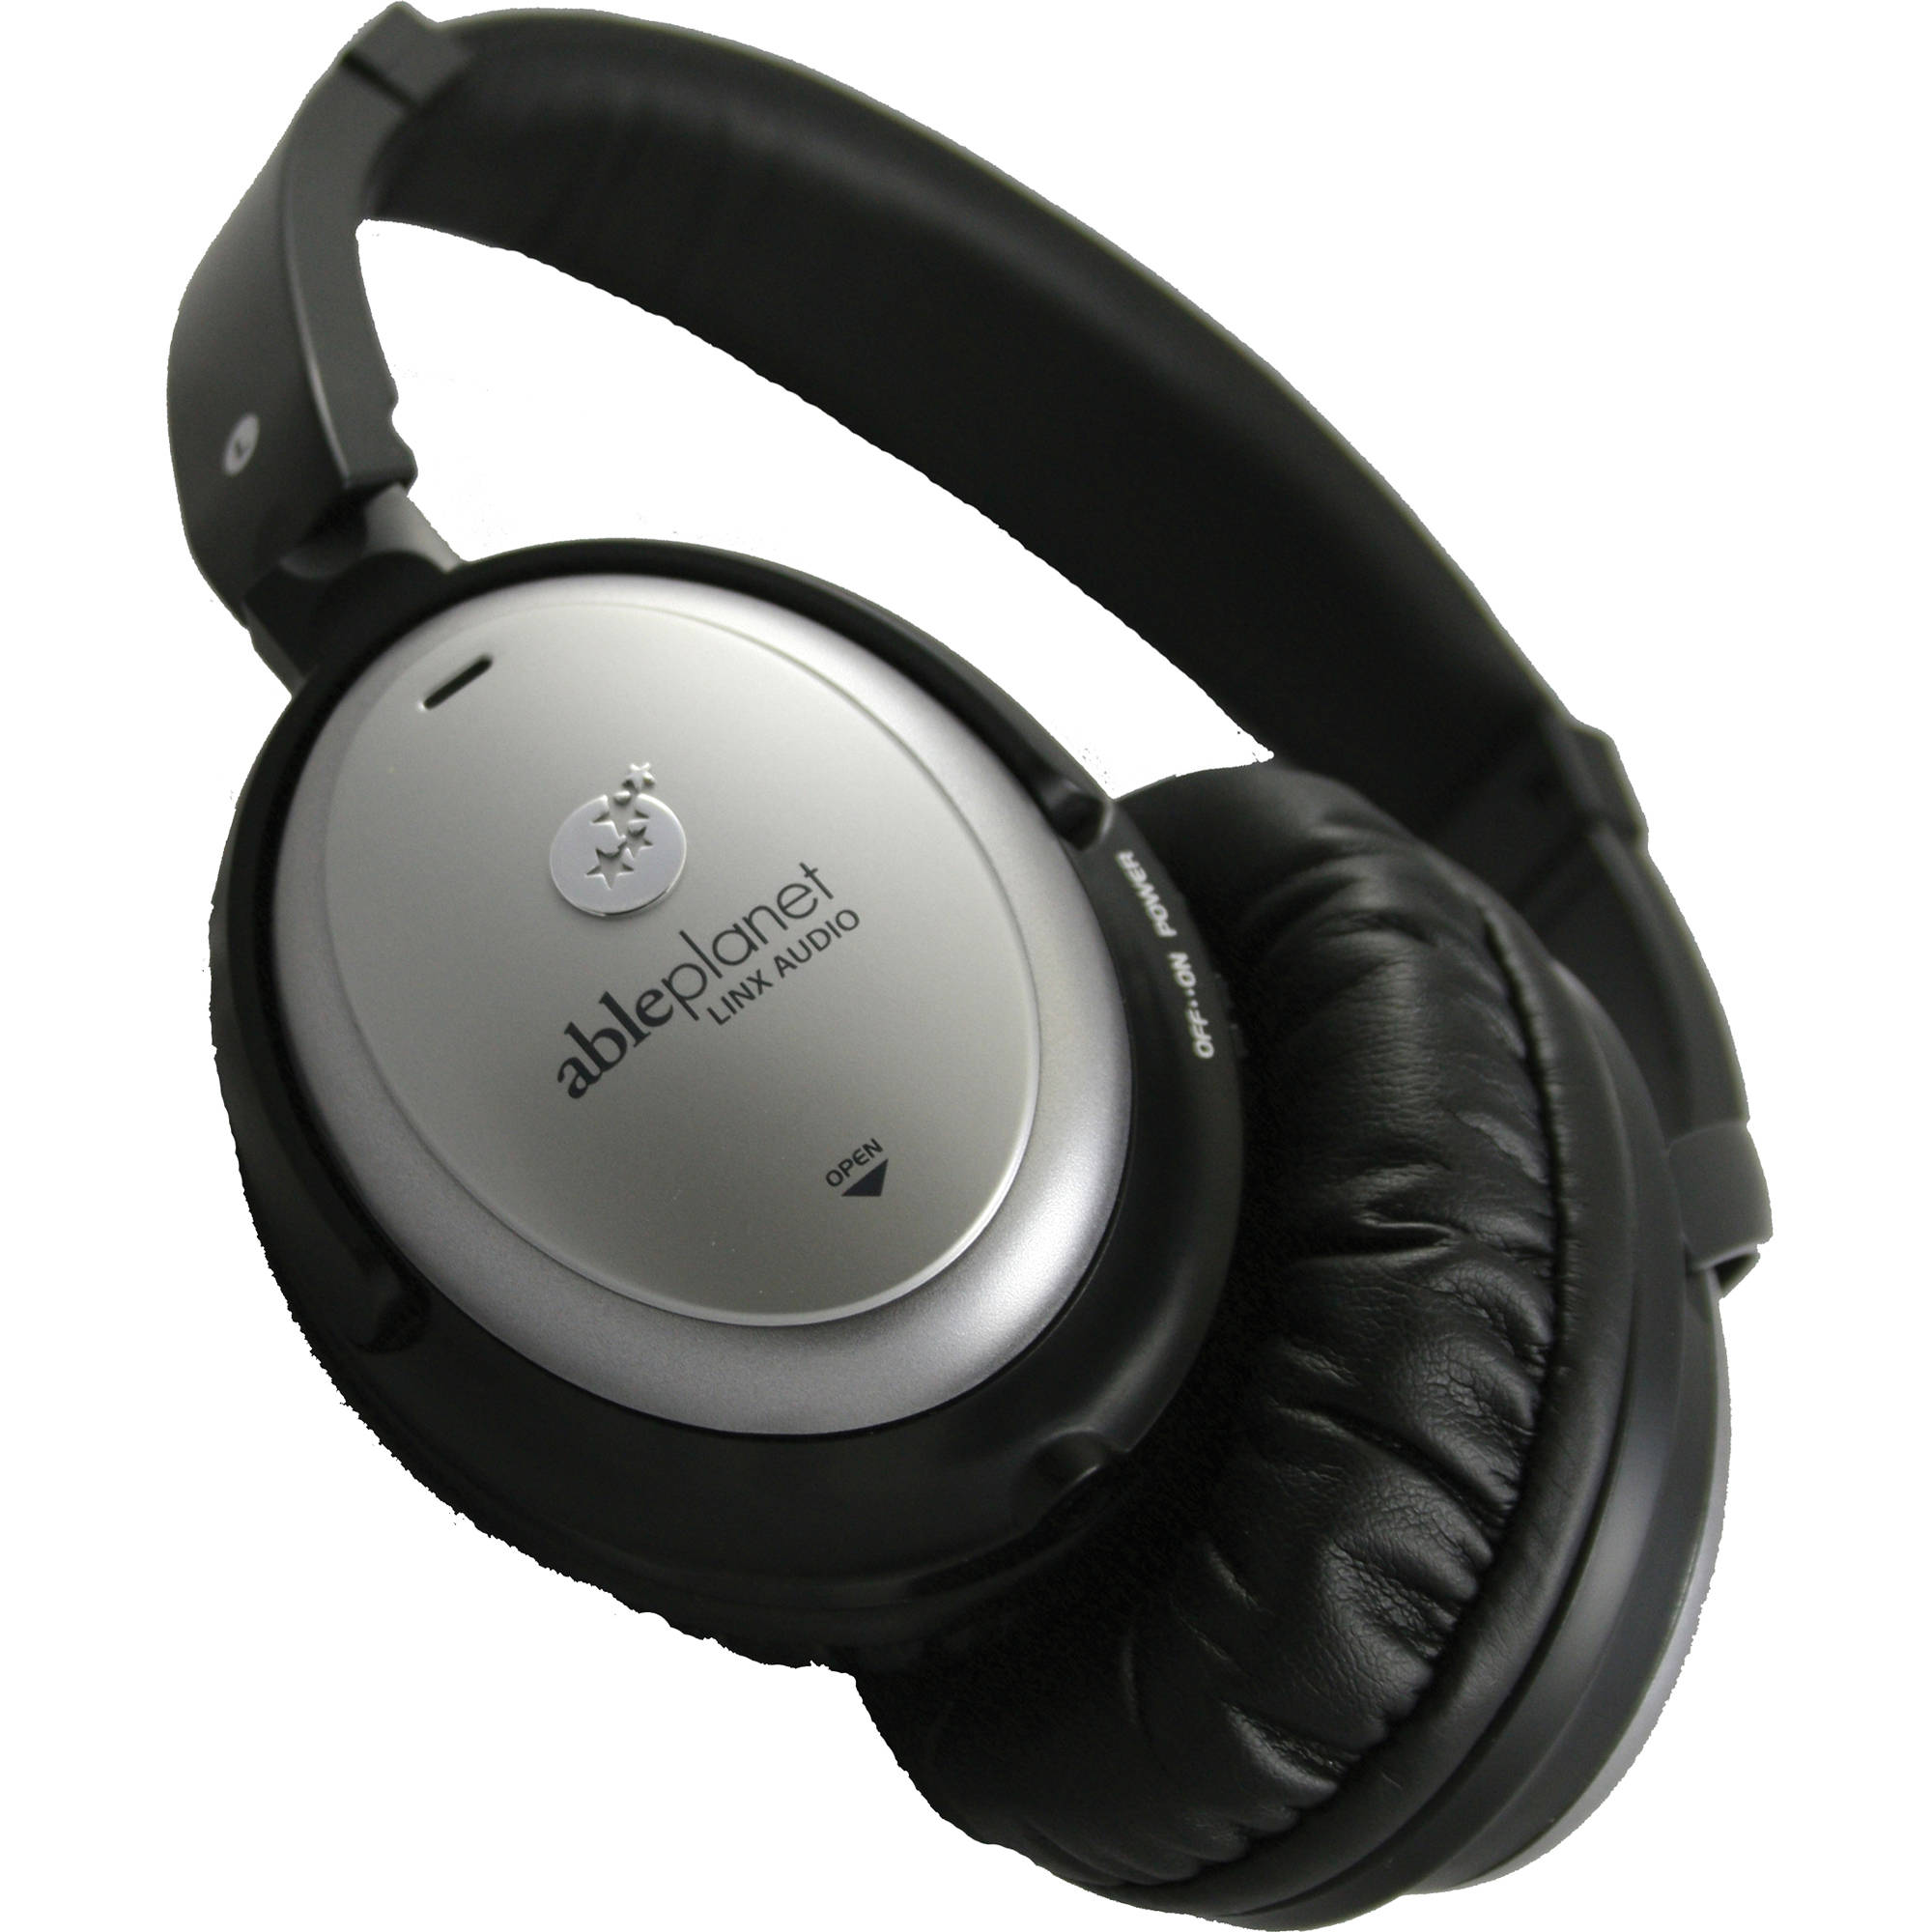 able planet case Overall, i highly suggest the able planet travelers choice noise canceling headset for long flights, for some peace and quiet, to drown out obnoxious neighbors or roommates, or just for simple everyday music listening.